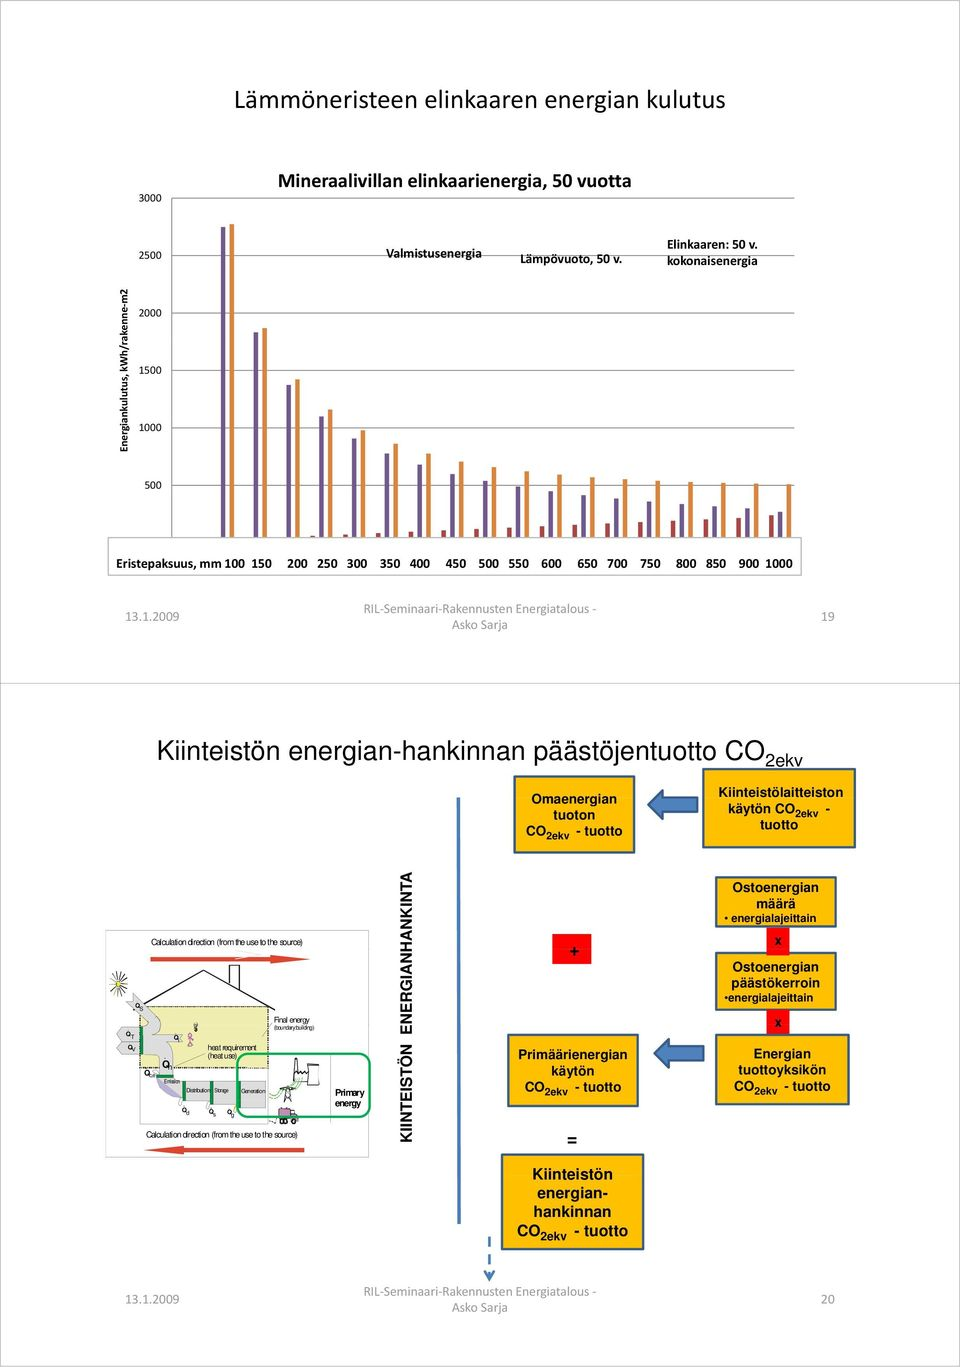 1000 19 19 Kiinteistön energian-hankinnan päästöjentuotto CO 2ekv Omaenergian tuoton CO 2ekv - tuotto Kiinteistölaitteiston käytön CO 2ekv - tuotto Q T Q V Q S Calculation direction (from the use to